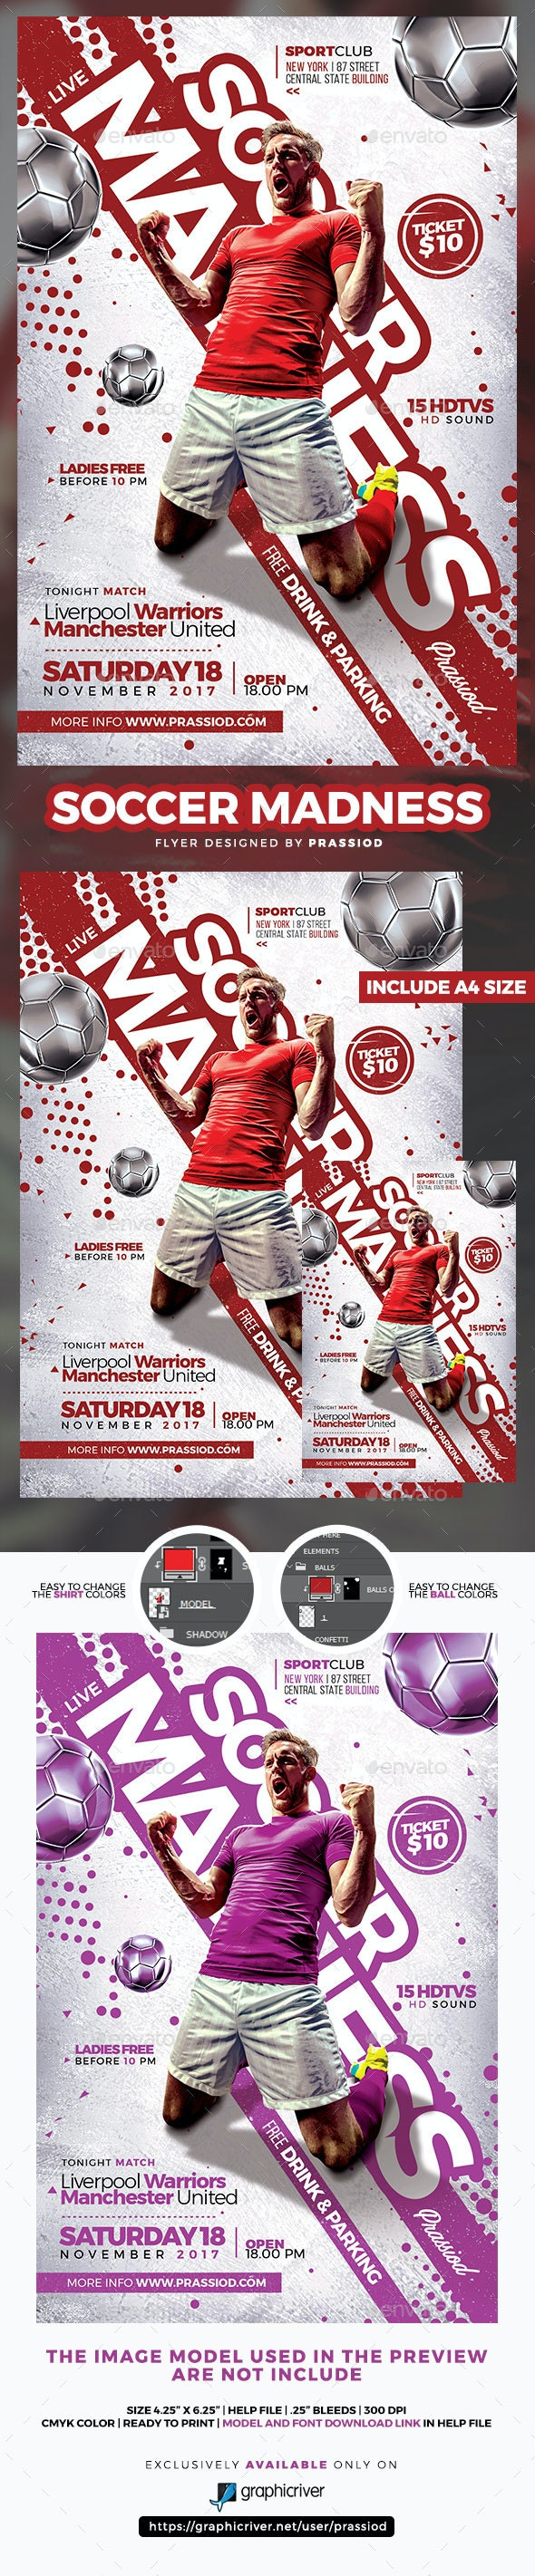 Soccer Madness Flyer Template - Sports Events